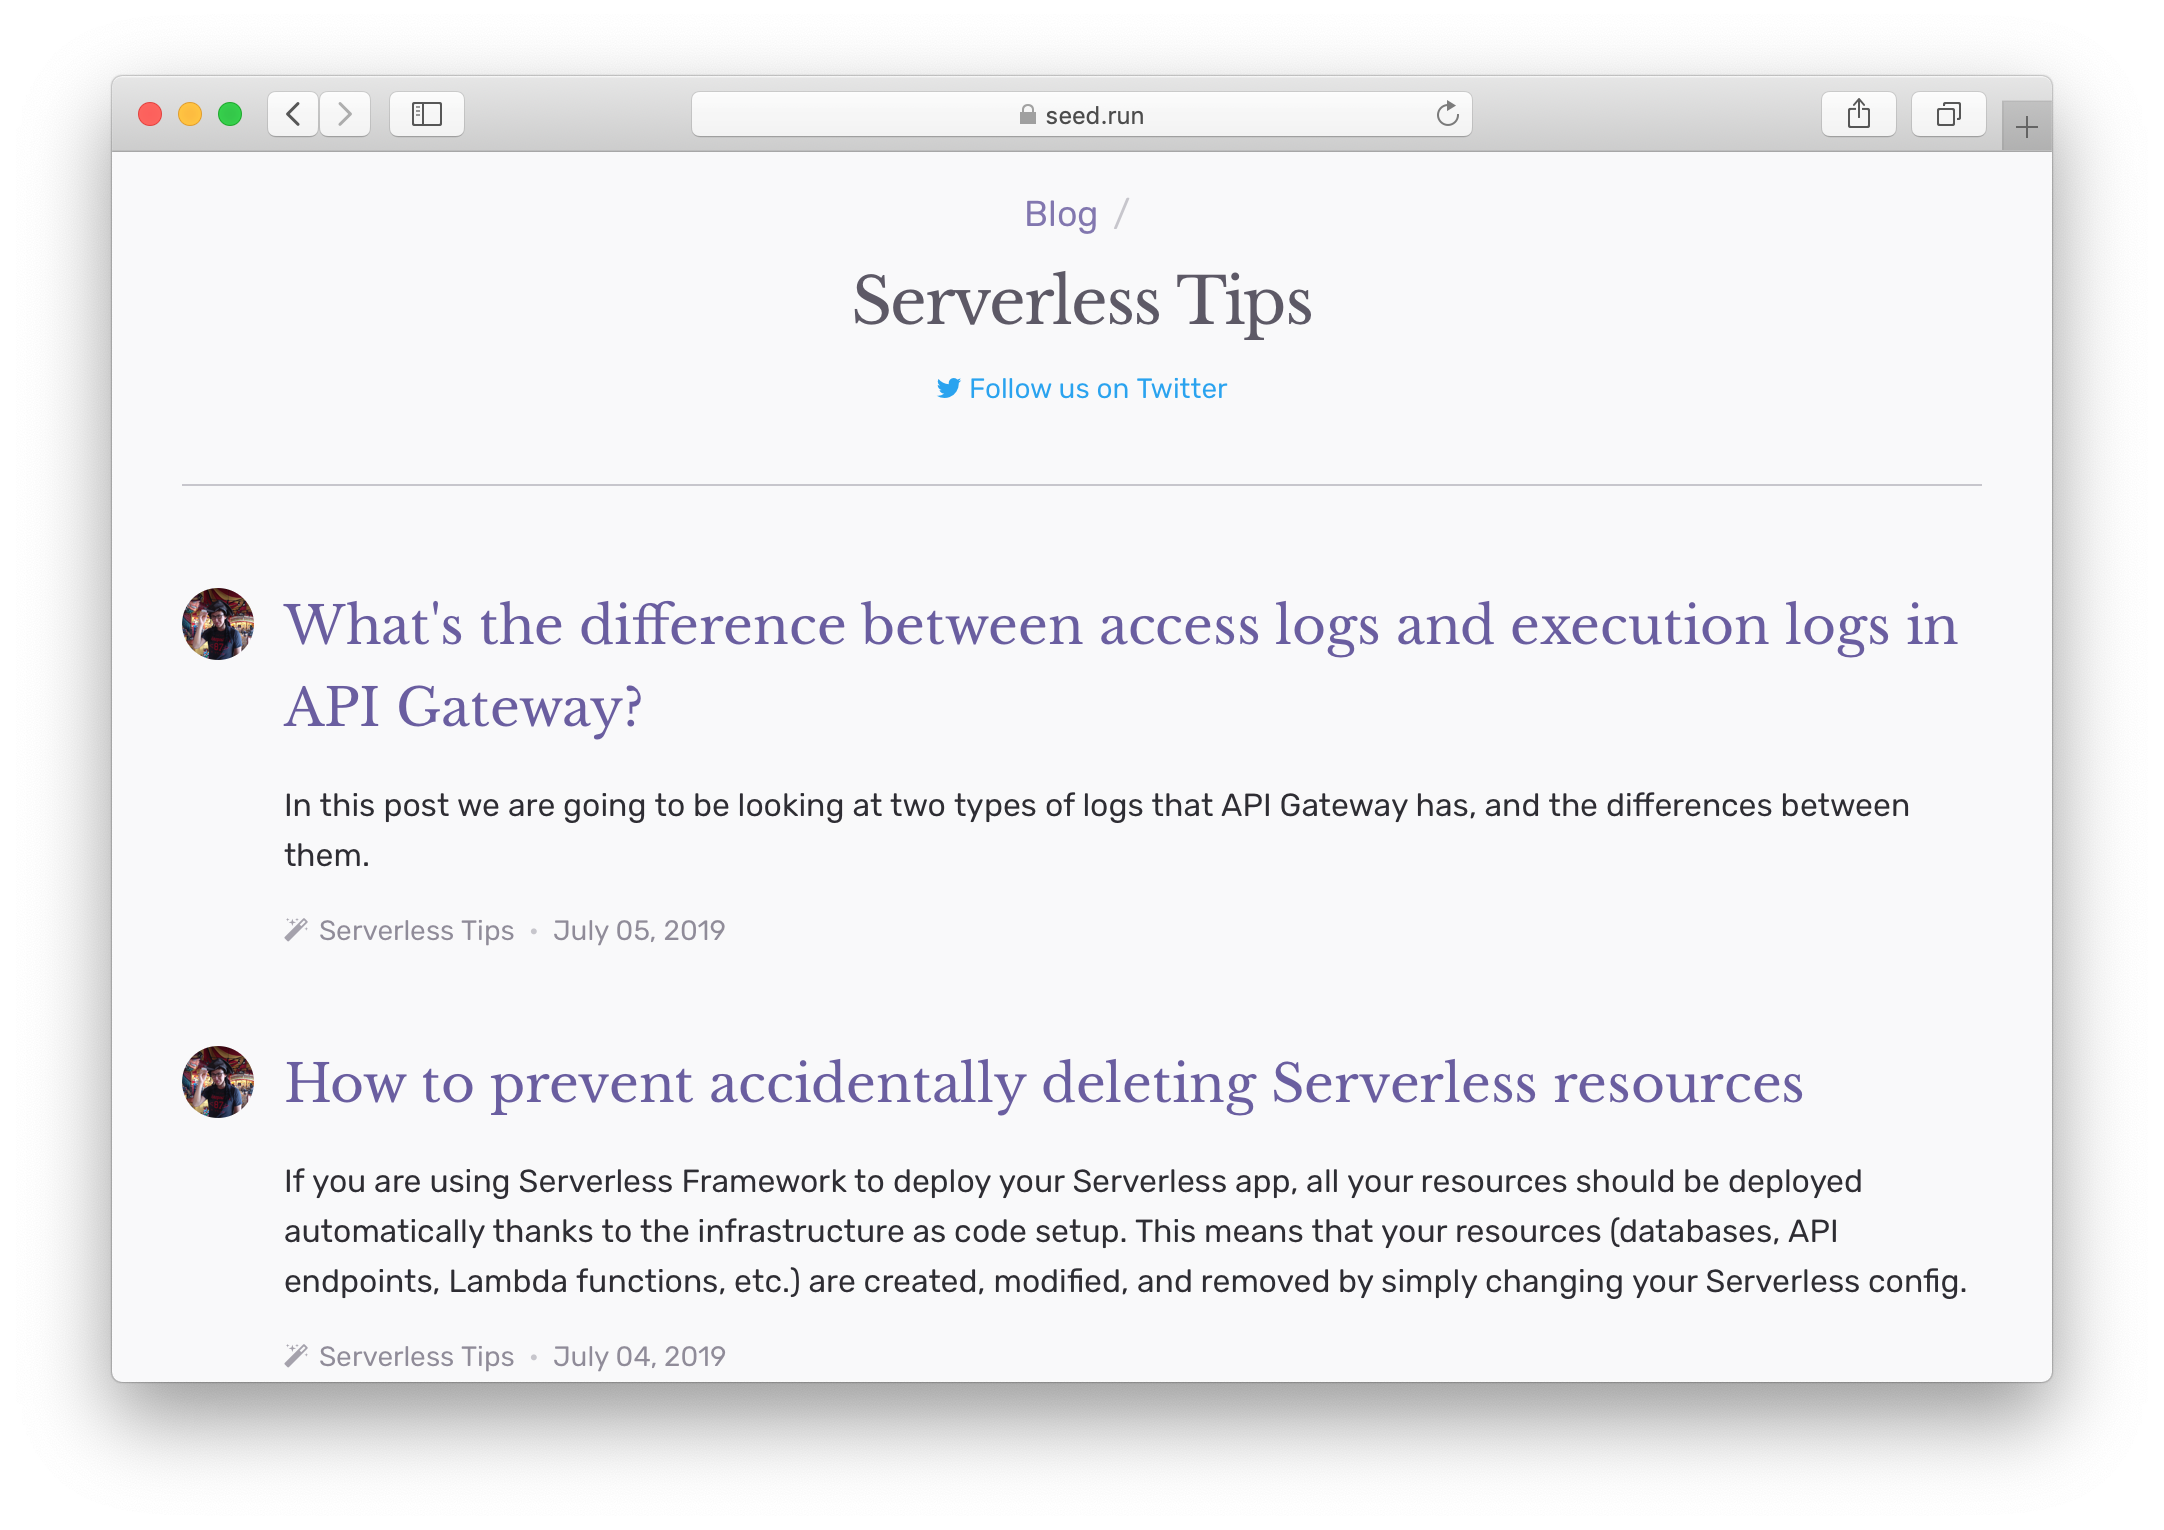 Serverless Tips Seed blog